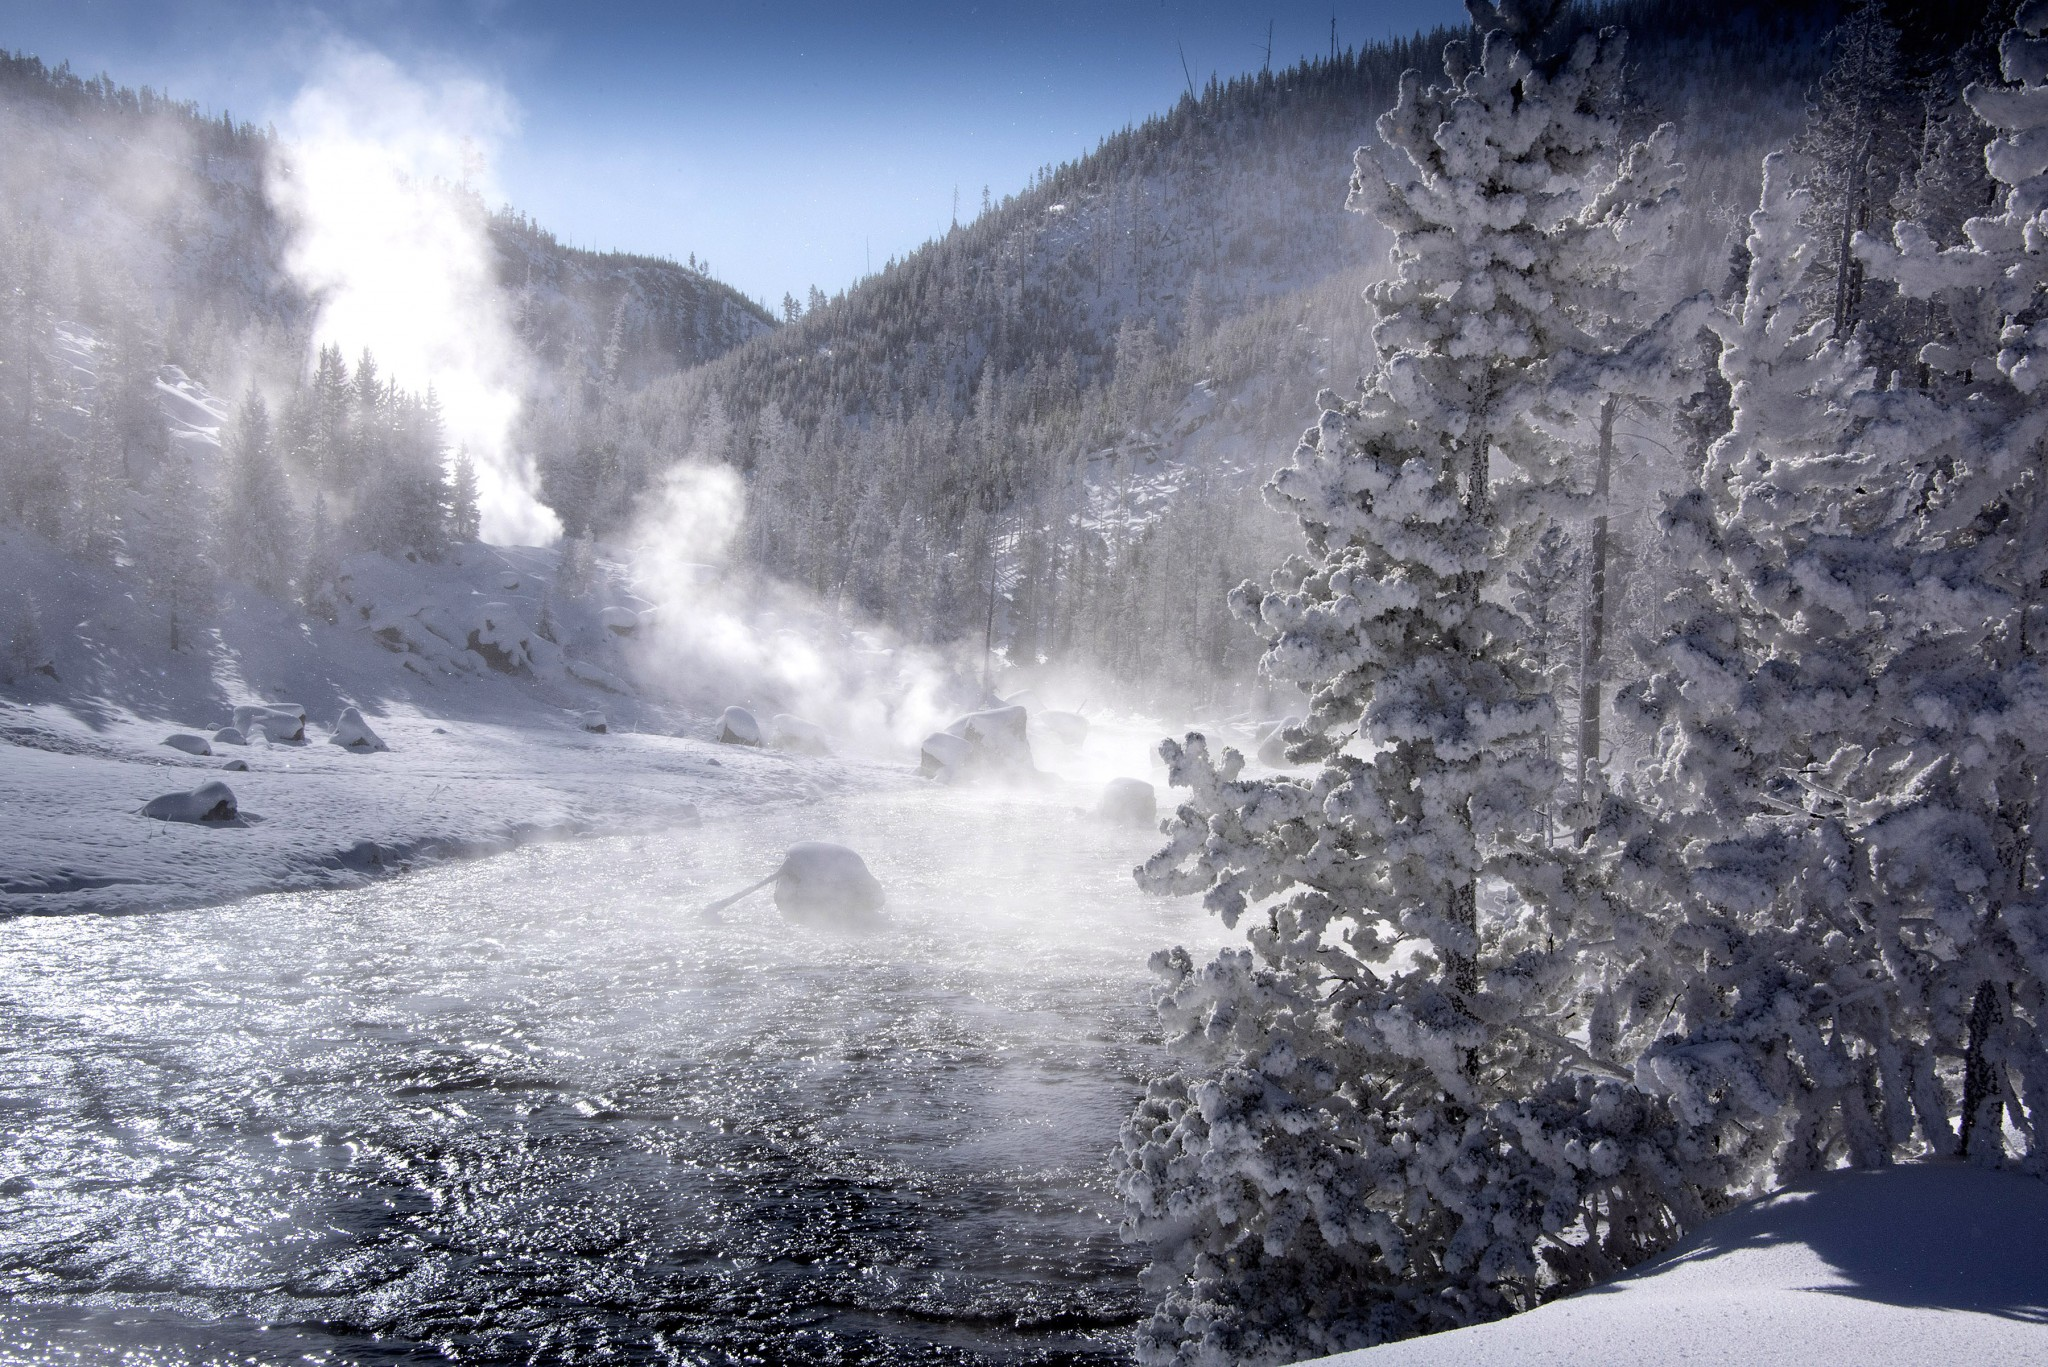 Yellowstone's Gibbon River near Beryl Spring is a winter wonderland where steam rises into surrounding trees and freezes. (Photo by Art Weber)